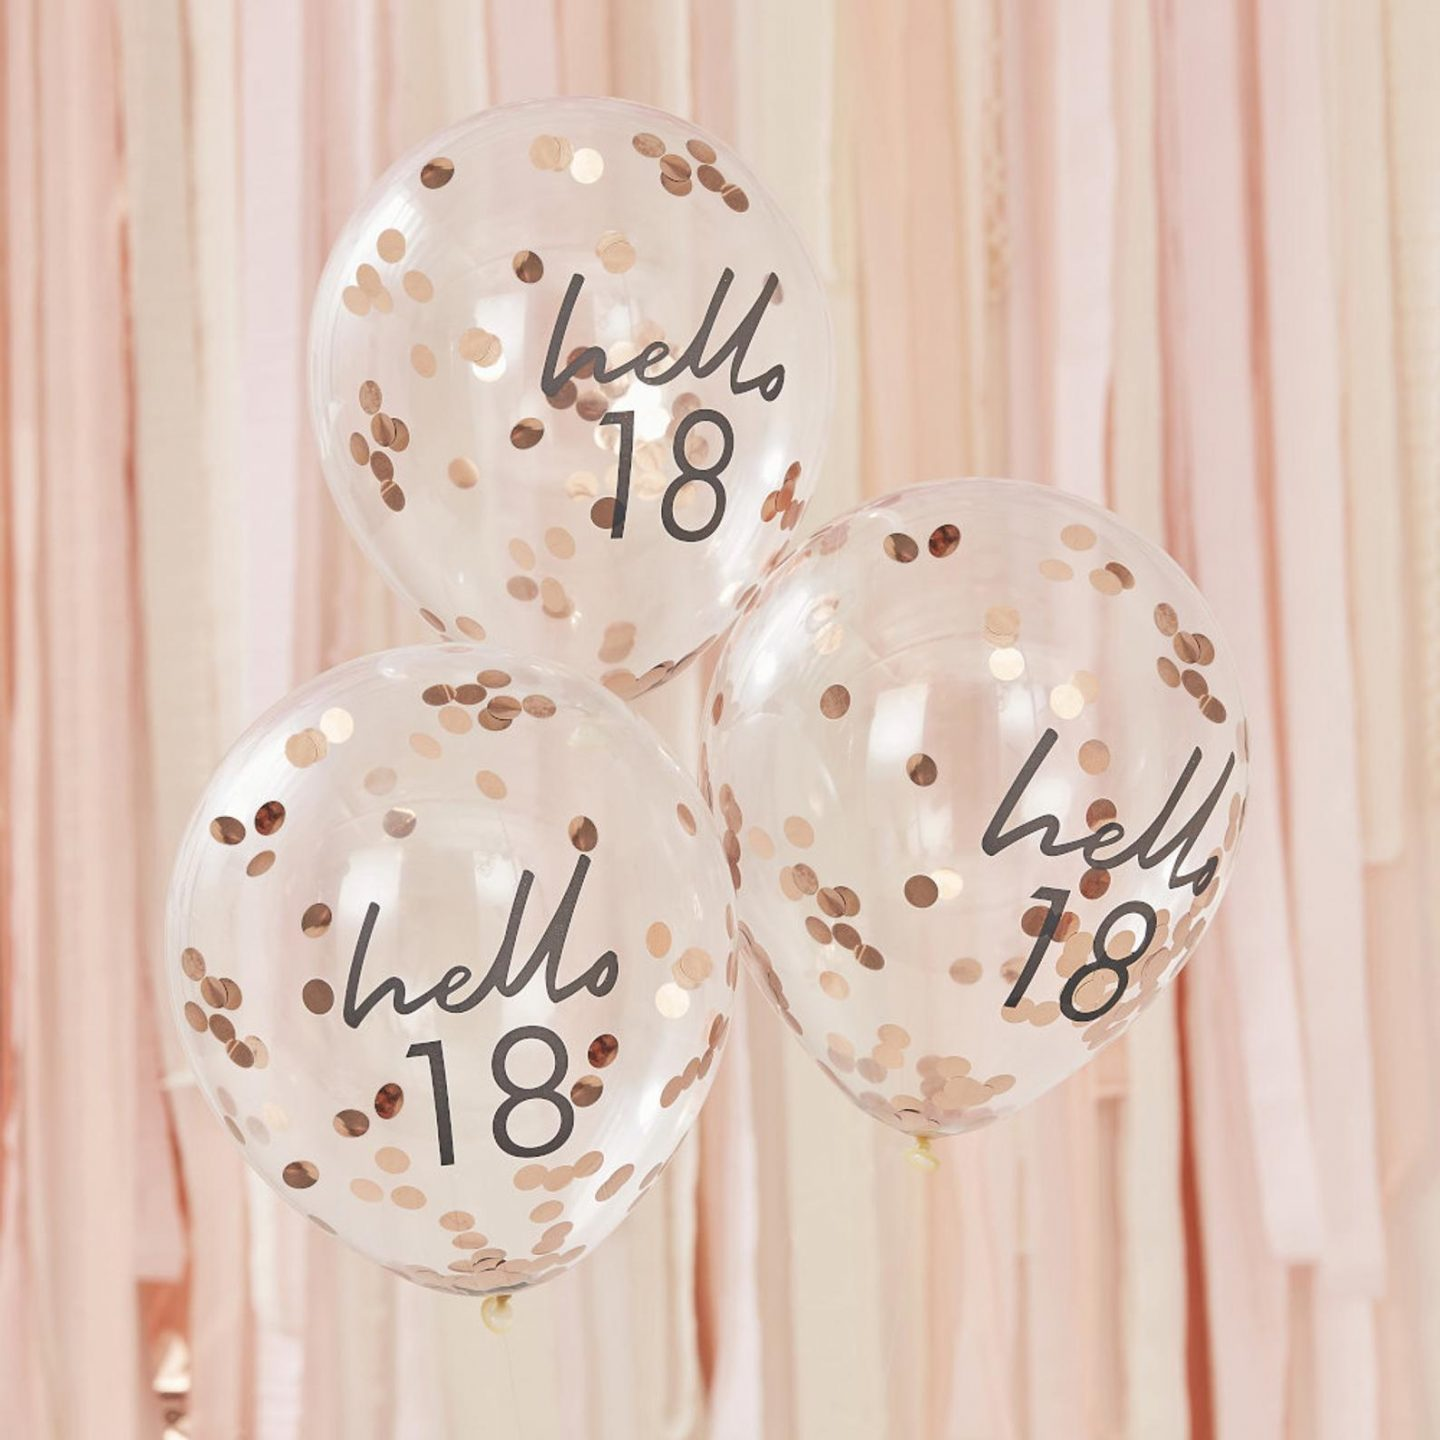 Cute and affordable birthday balloons with confetti